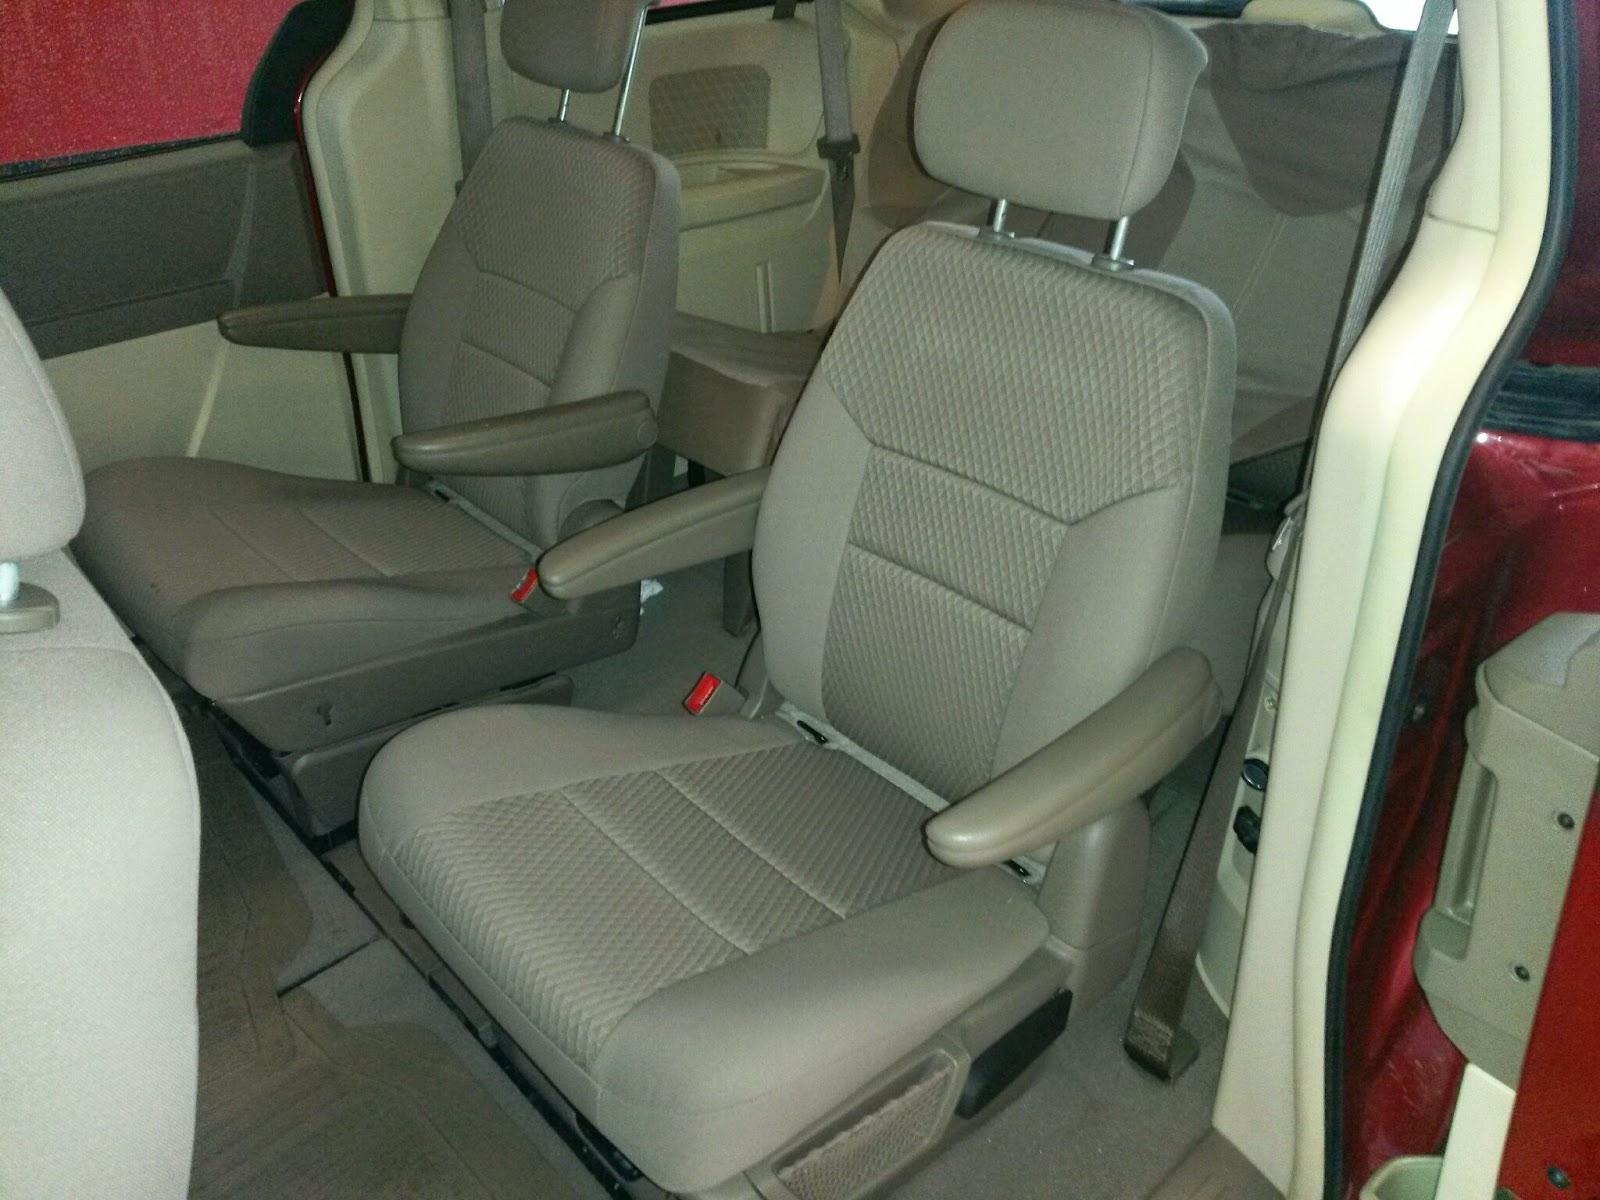 tdy sales 13 991 maroon 2010 chrysler town country with dvd stow n go seating call 817 243. Black Bedroom Furniture Sets. Home Design Ideas